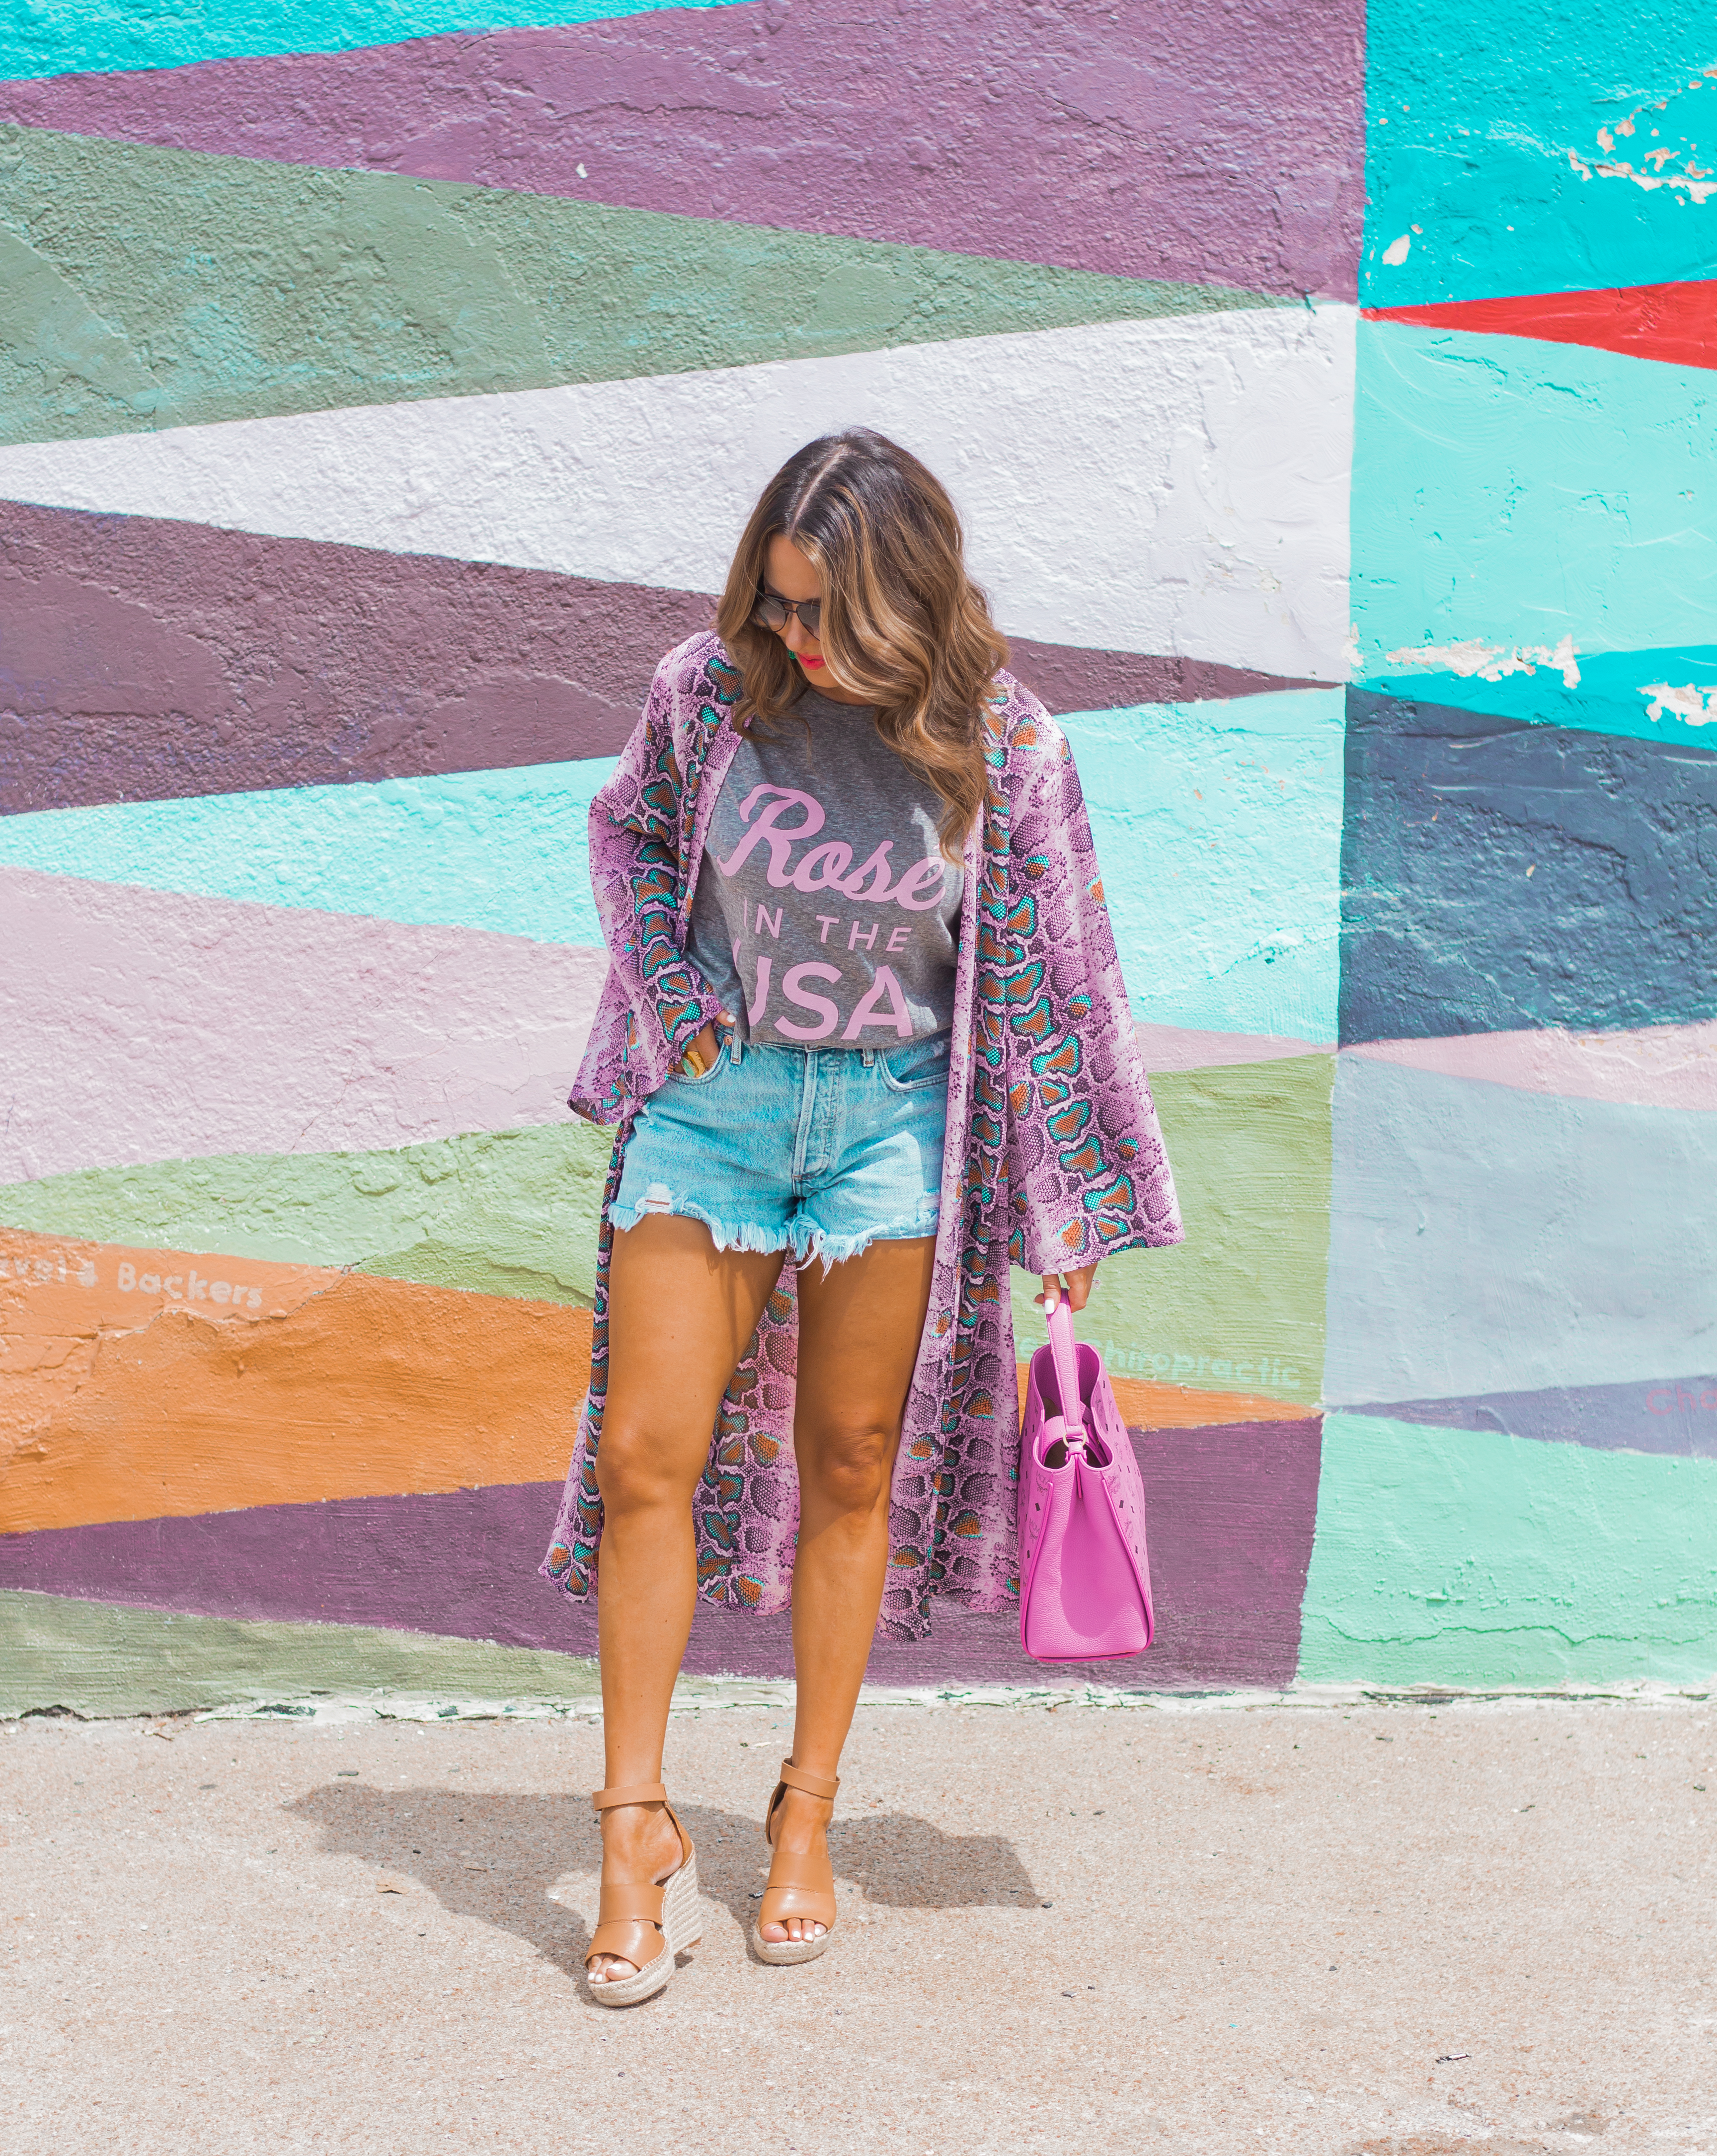 Rosé in the USA-Buddy Love-Kimono-Sugar Boutique-Women's Fashion-Summer Outfit-4th of July-Espadrille Wedges-MCM Bag-Pink Bag-Omaha Blogger-Sabby Style-Agolde Jean Shorts-Turquoise Jewelry-Quay Sunglasses-Colorful Style-Omaha-Nebraska-BaubleBar Earrings-12